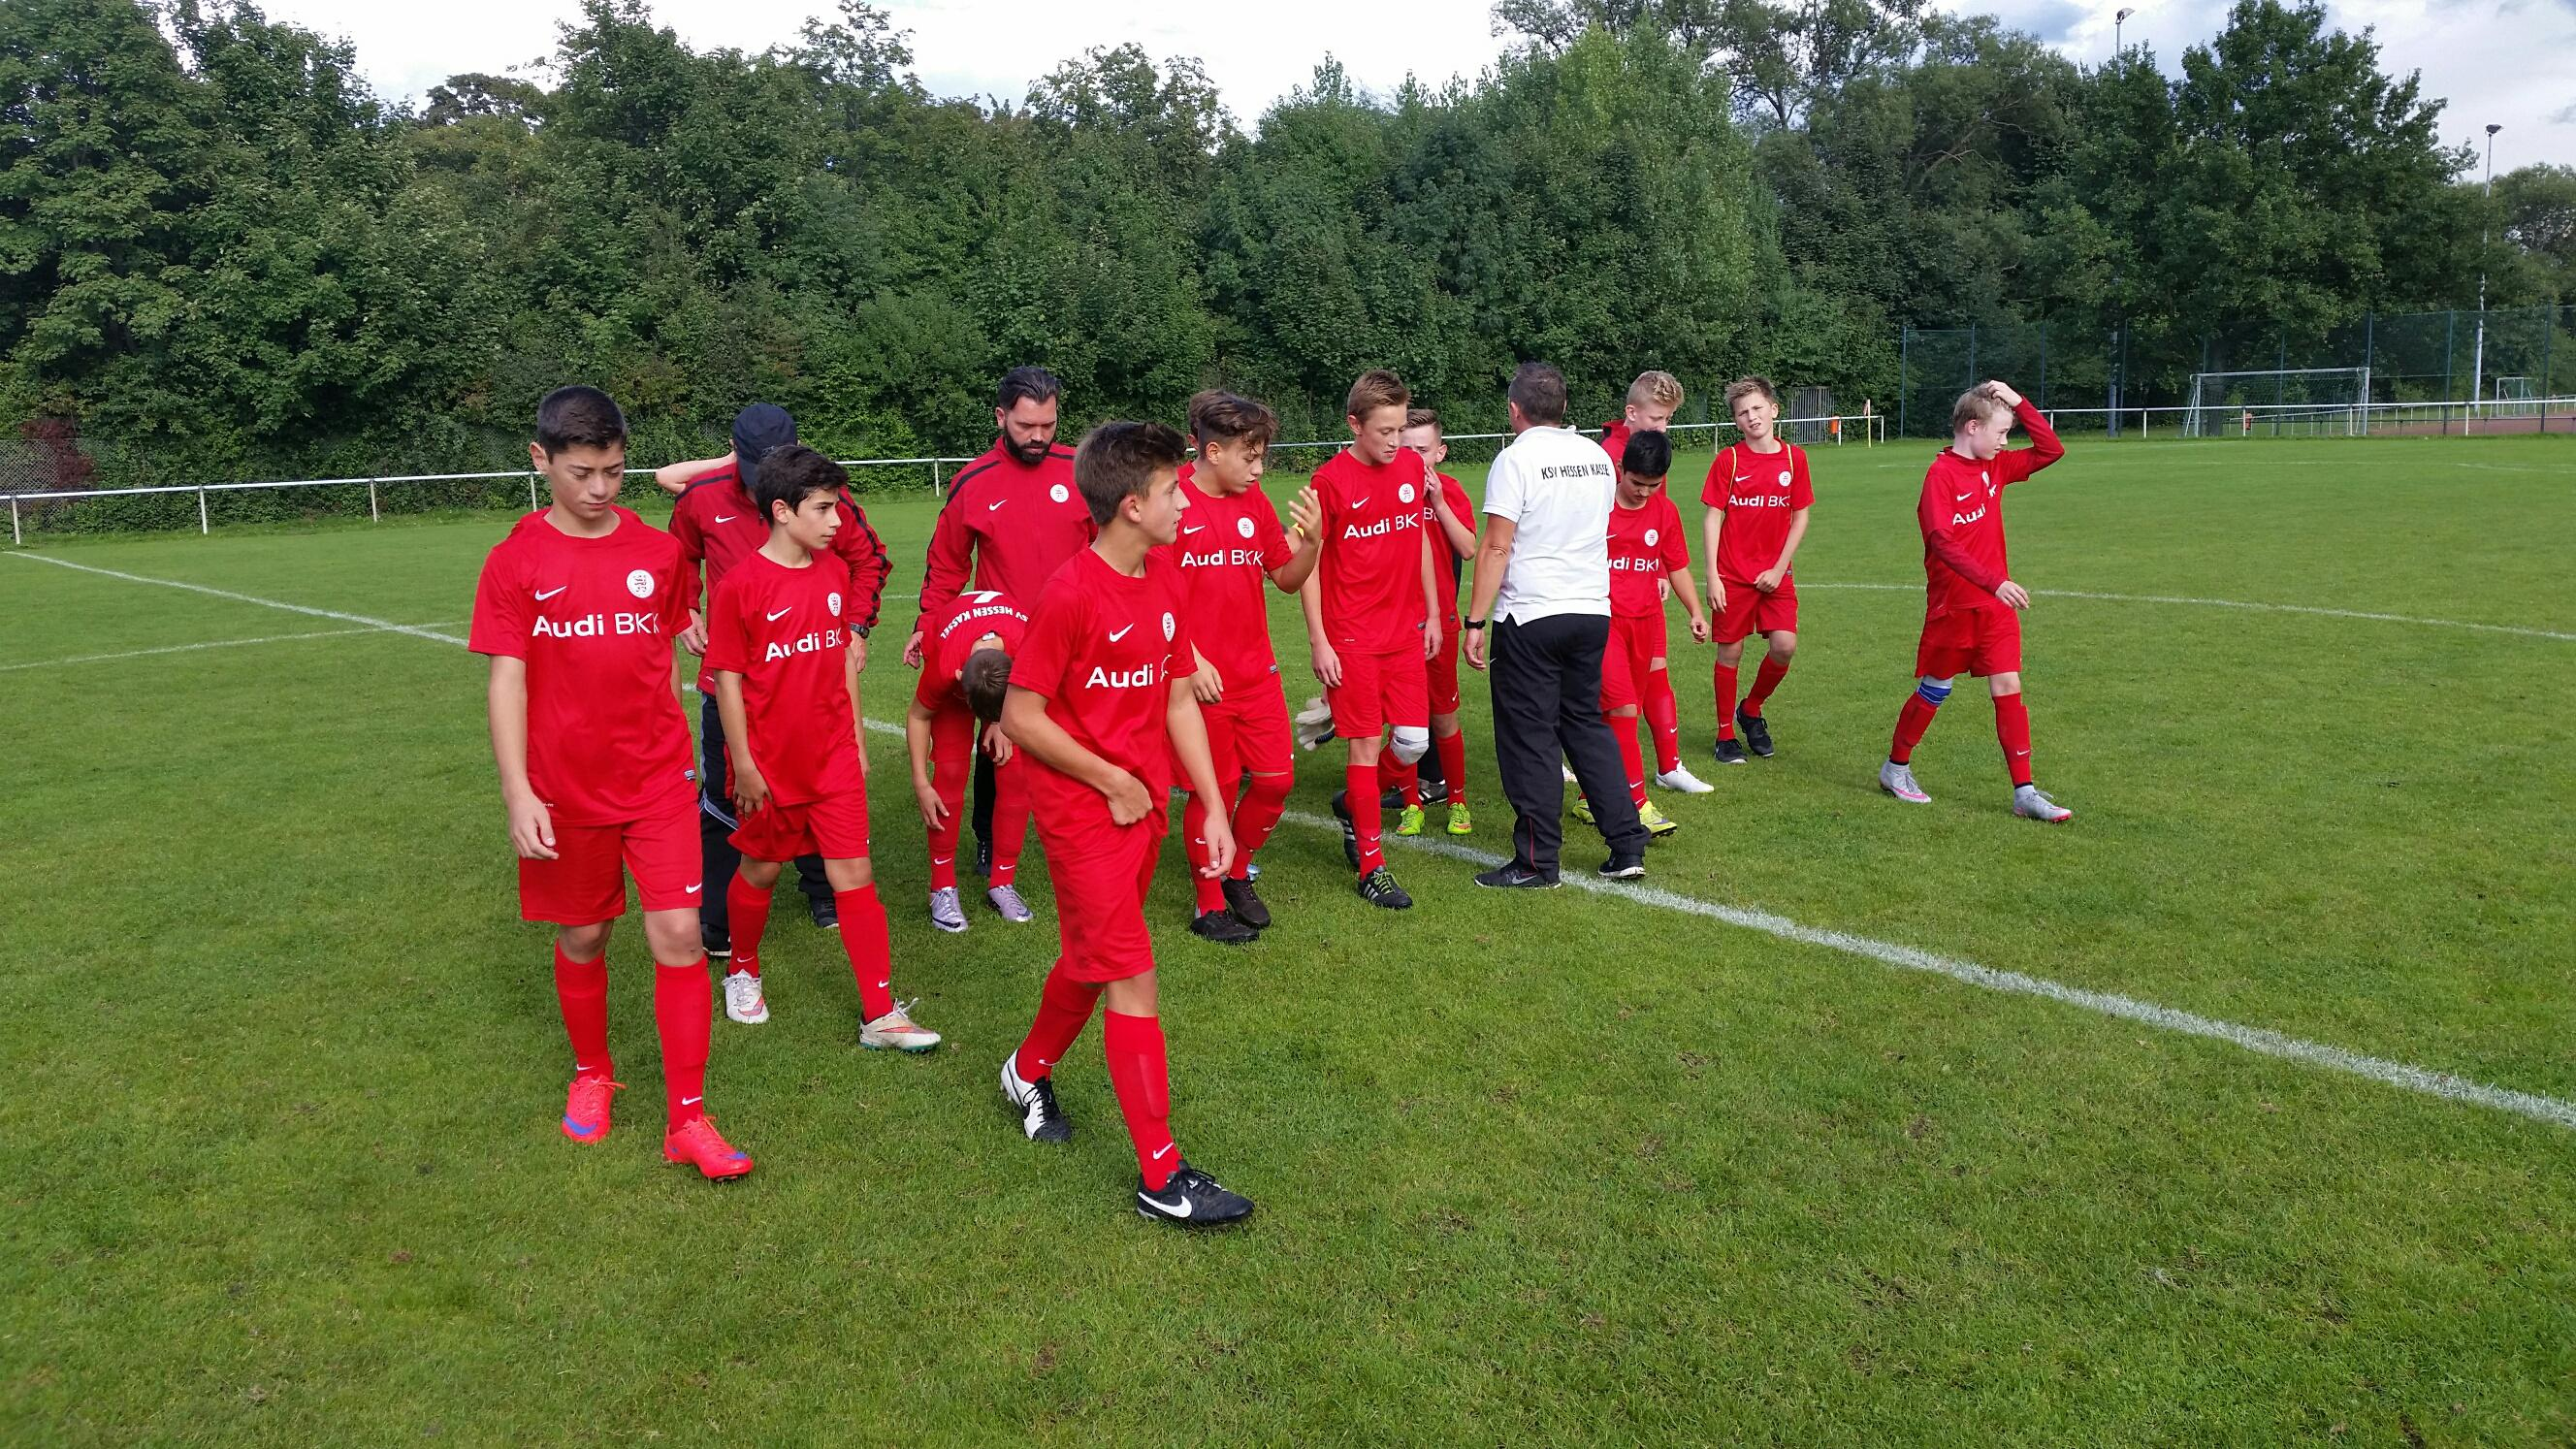 U14 - Hertingshausen / Rengershausen